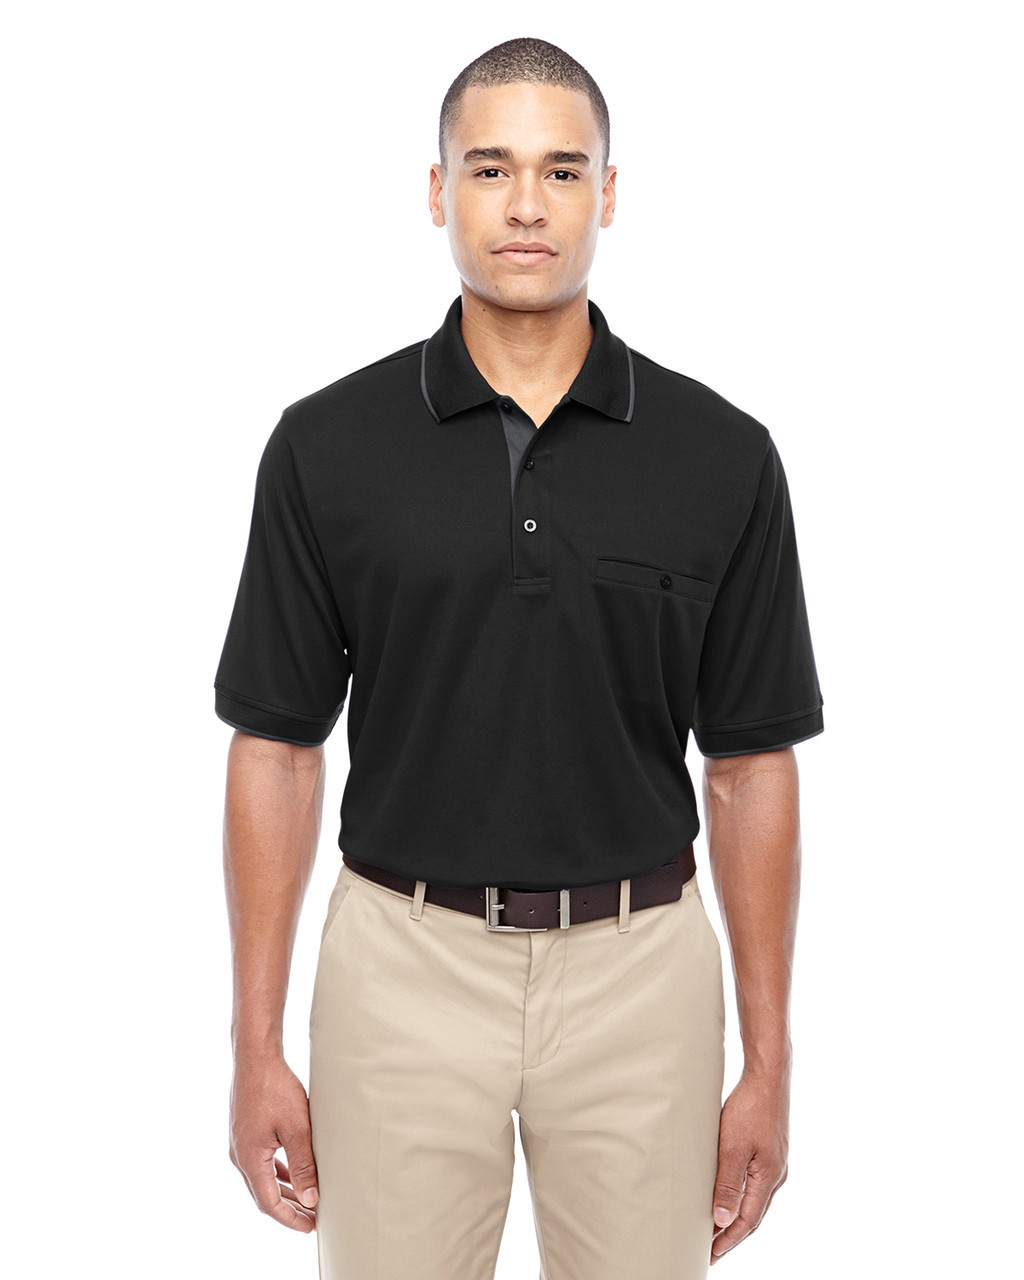 Black 88222 Ash City - Core 365 Men's Motive Performance Pique Polo Shirt with Tipped Collar   Blankclothing.ca